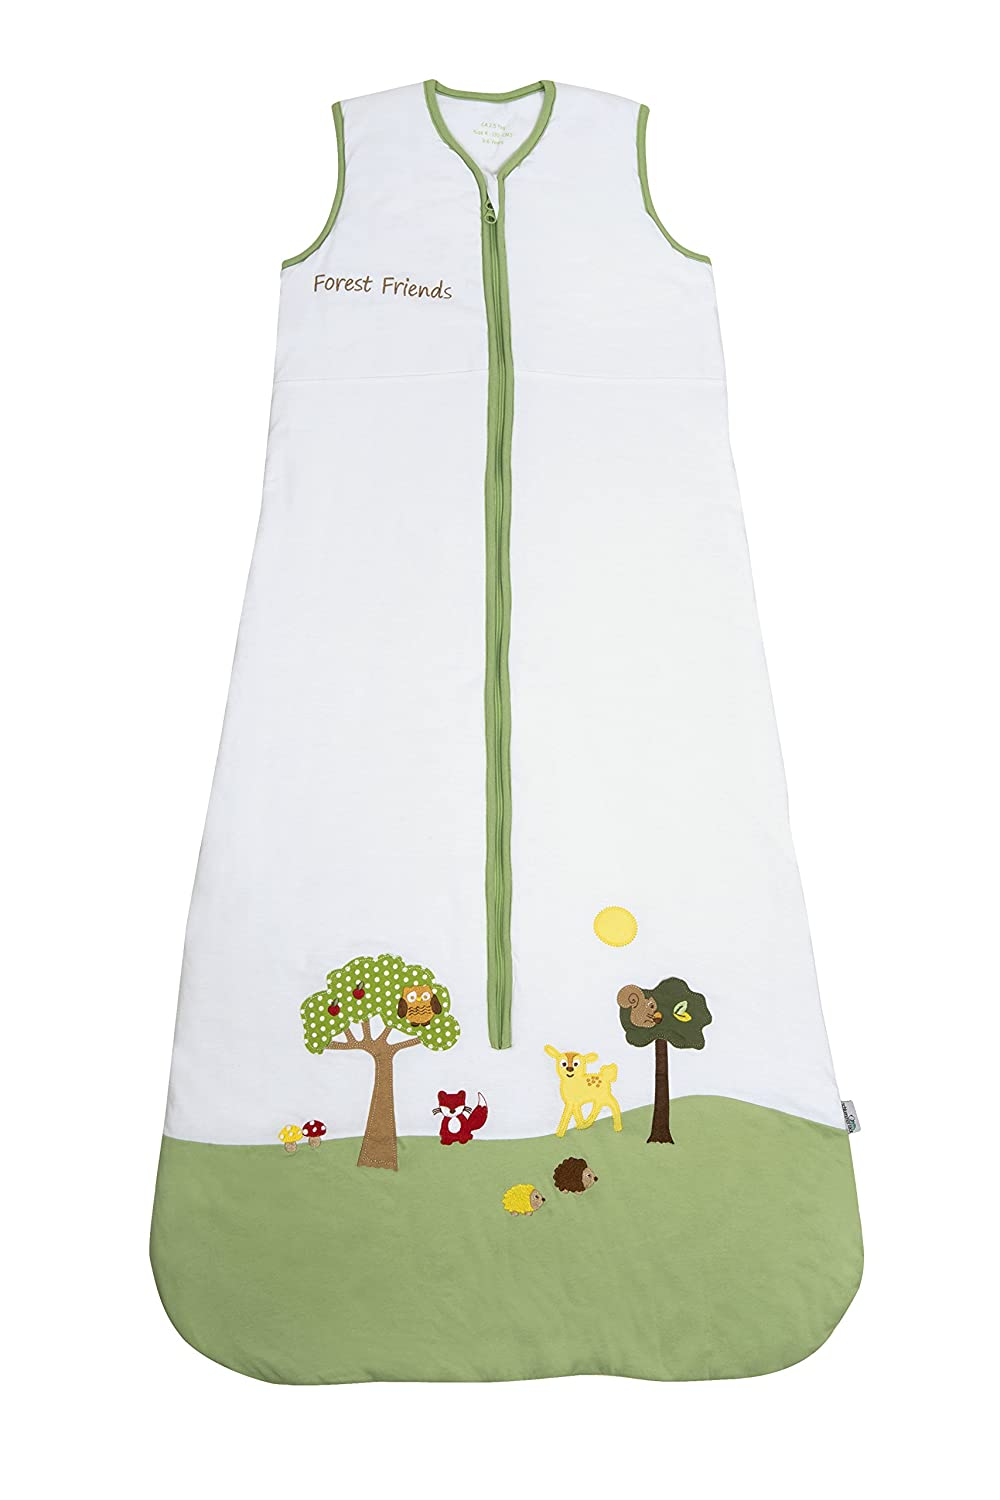 Slumbersafe Baby Sleeping Bag 2.5 Tog - Forest Friends, 6-18 months/MEDIUM